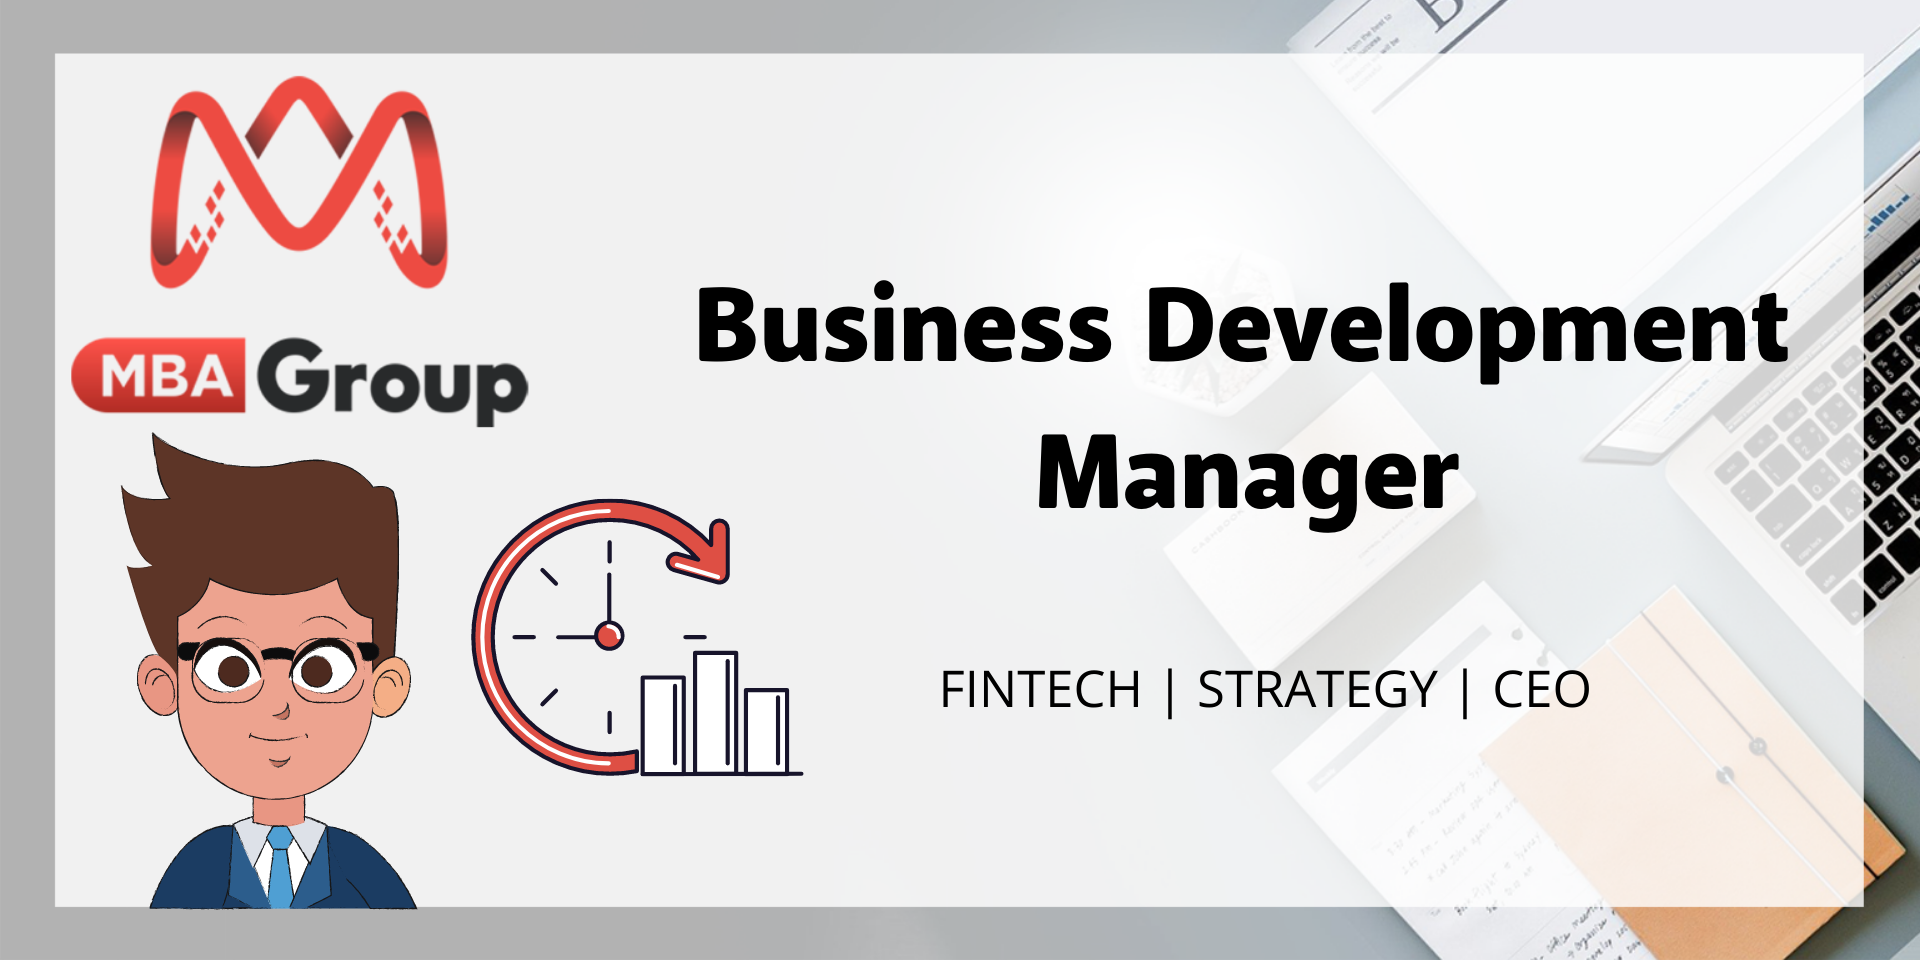 Business Development Manager W M D Mba Group